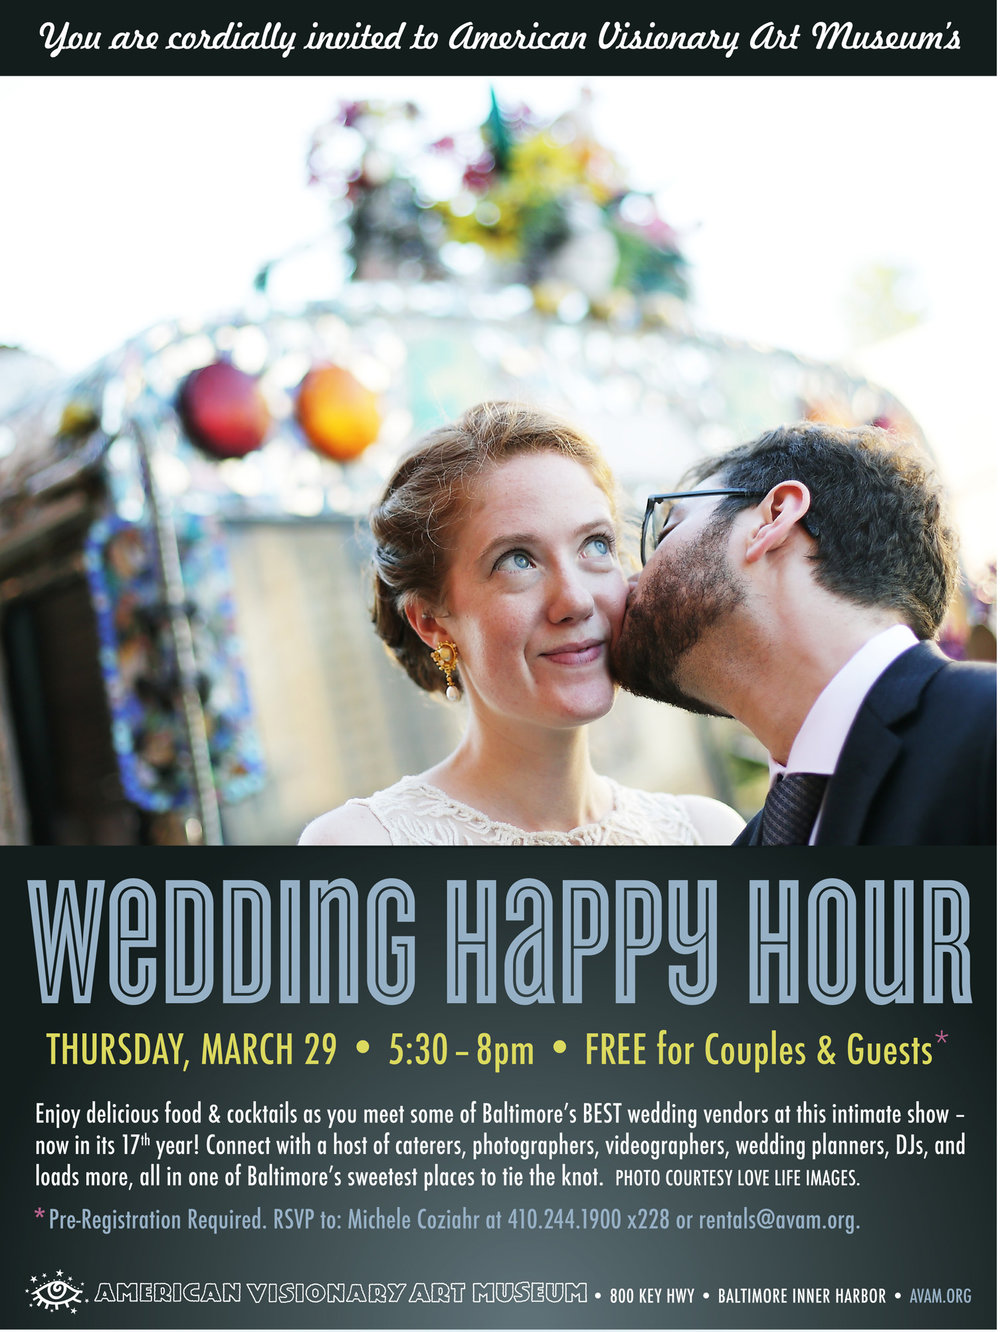 2018 Wedding Happy Hour Flyer.jpg